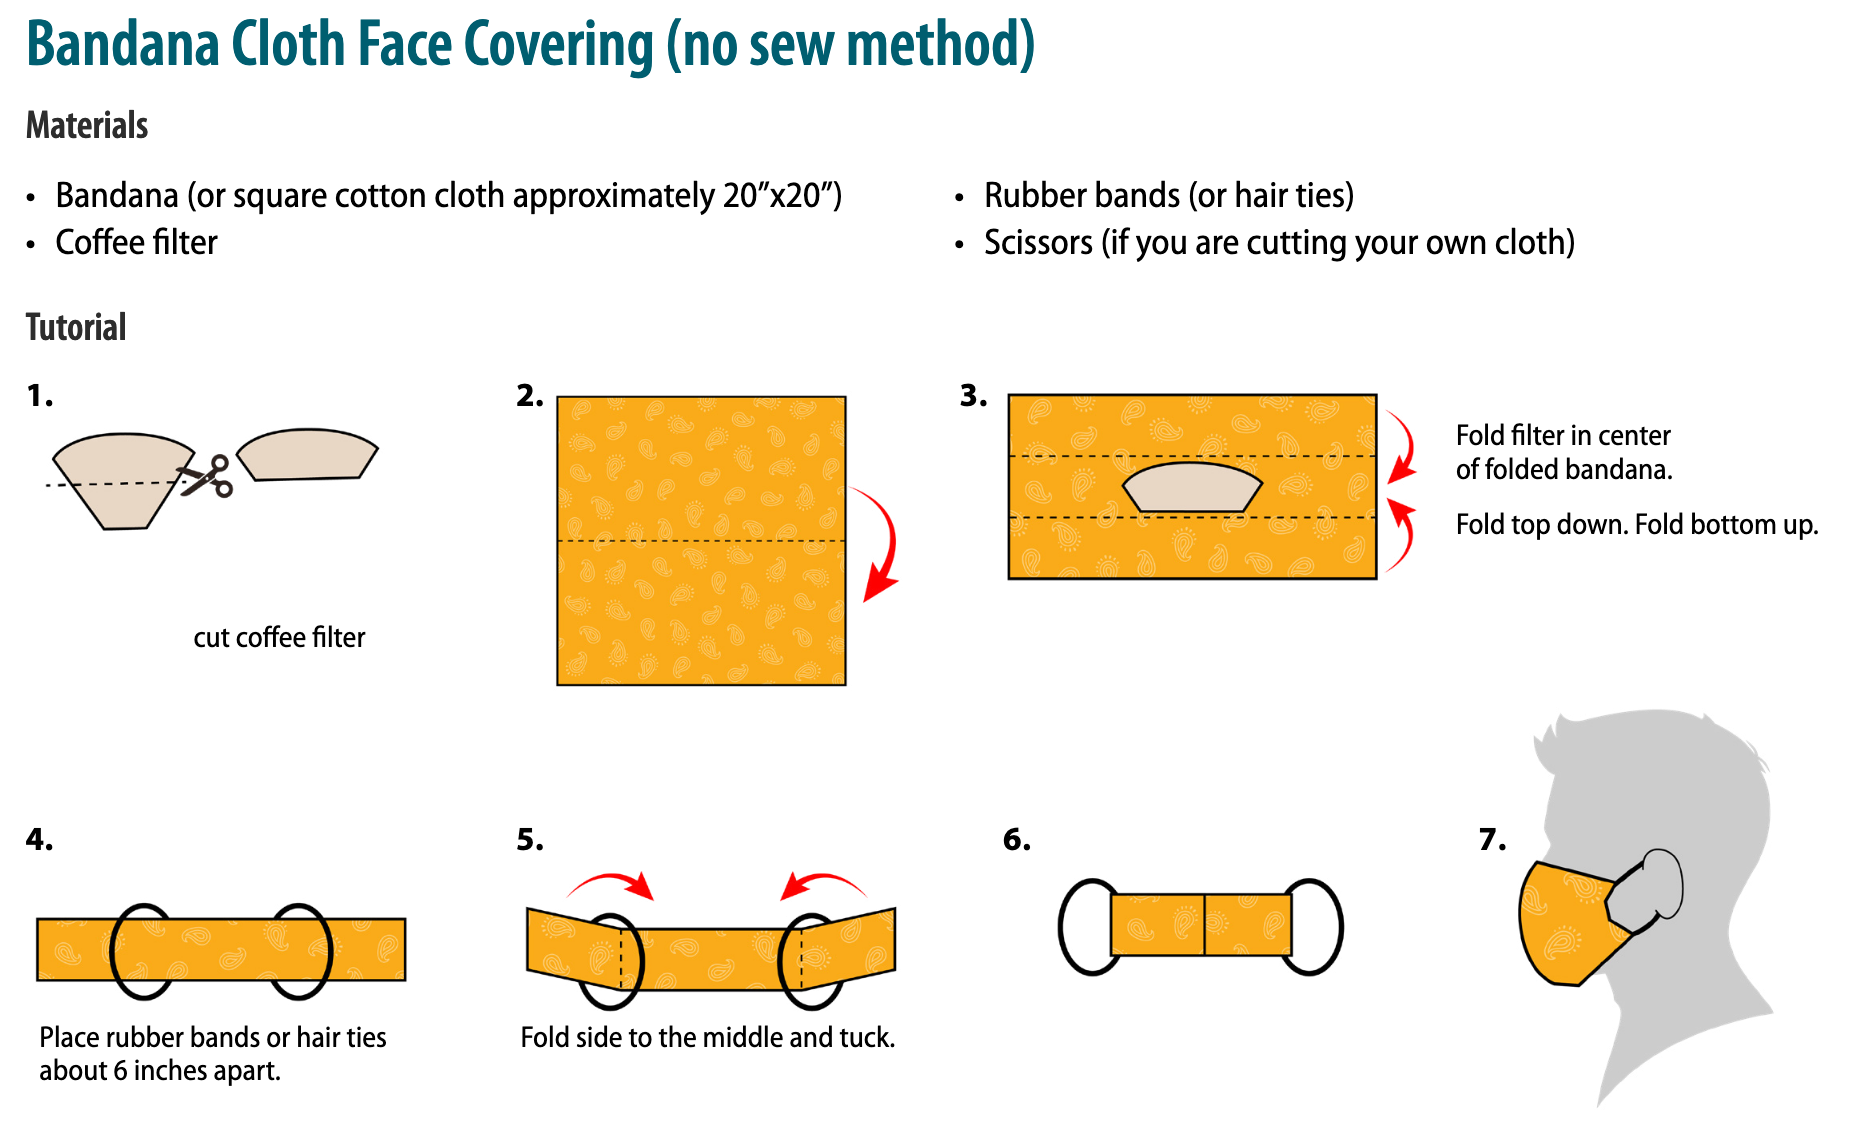 Bandana Cloth Face Covering (no sew method)